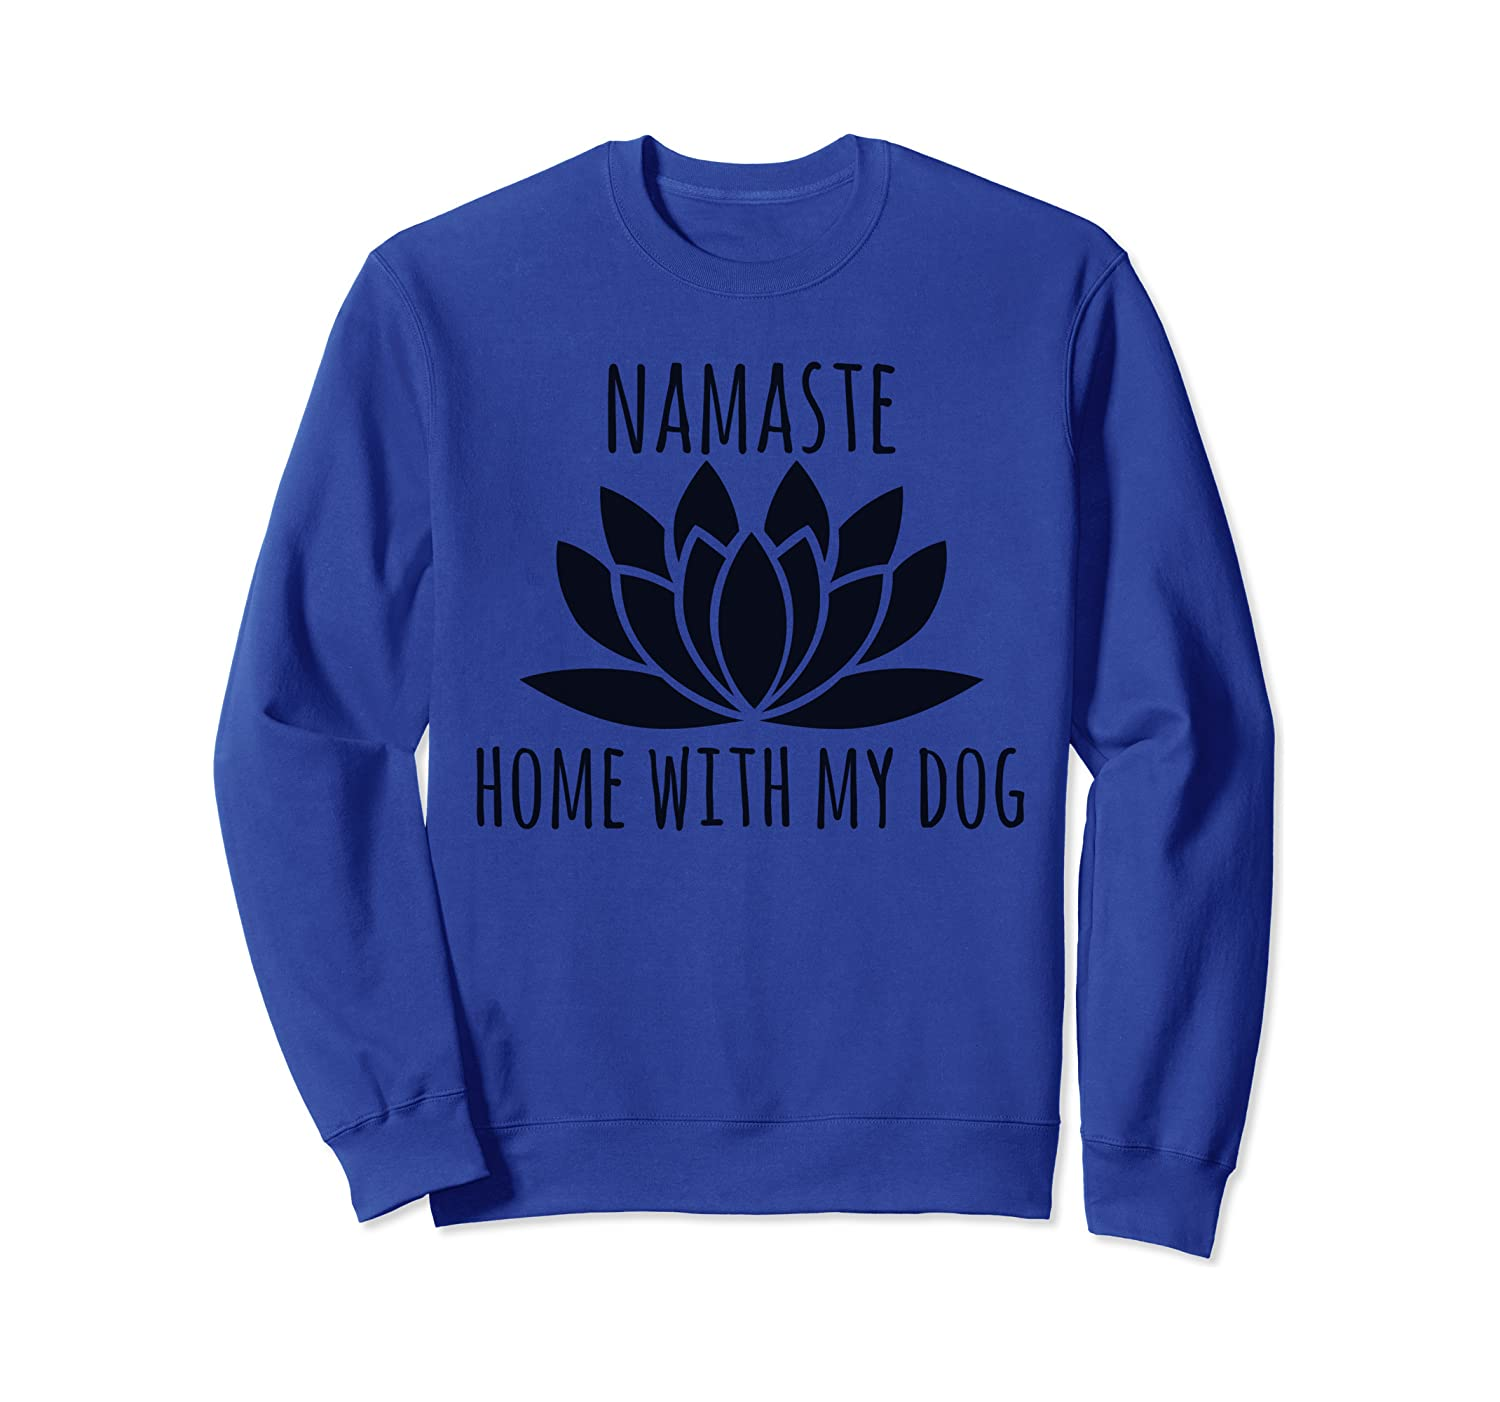 Top 10 Namaste Stay Home With My Dog Sweatshirt